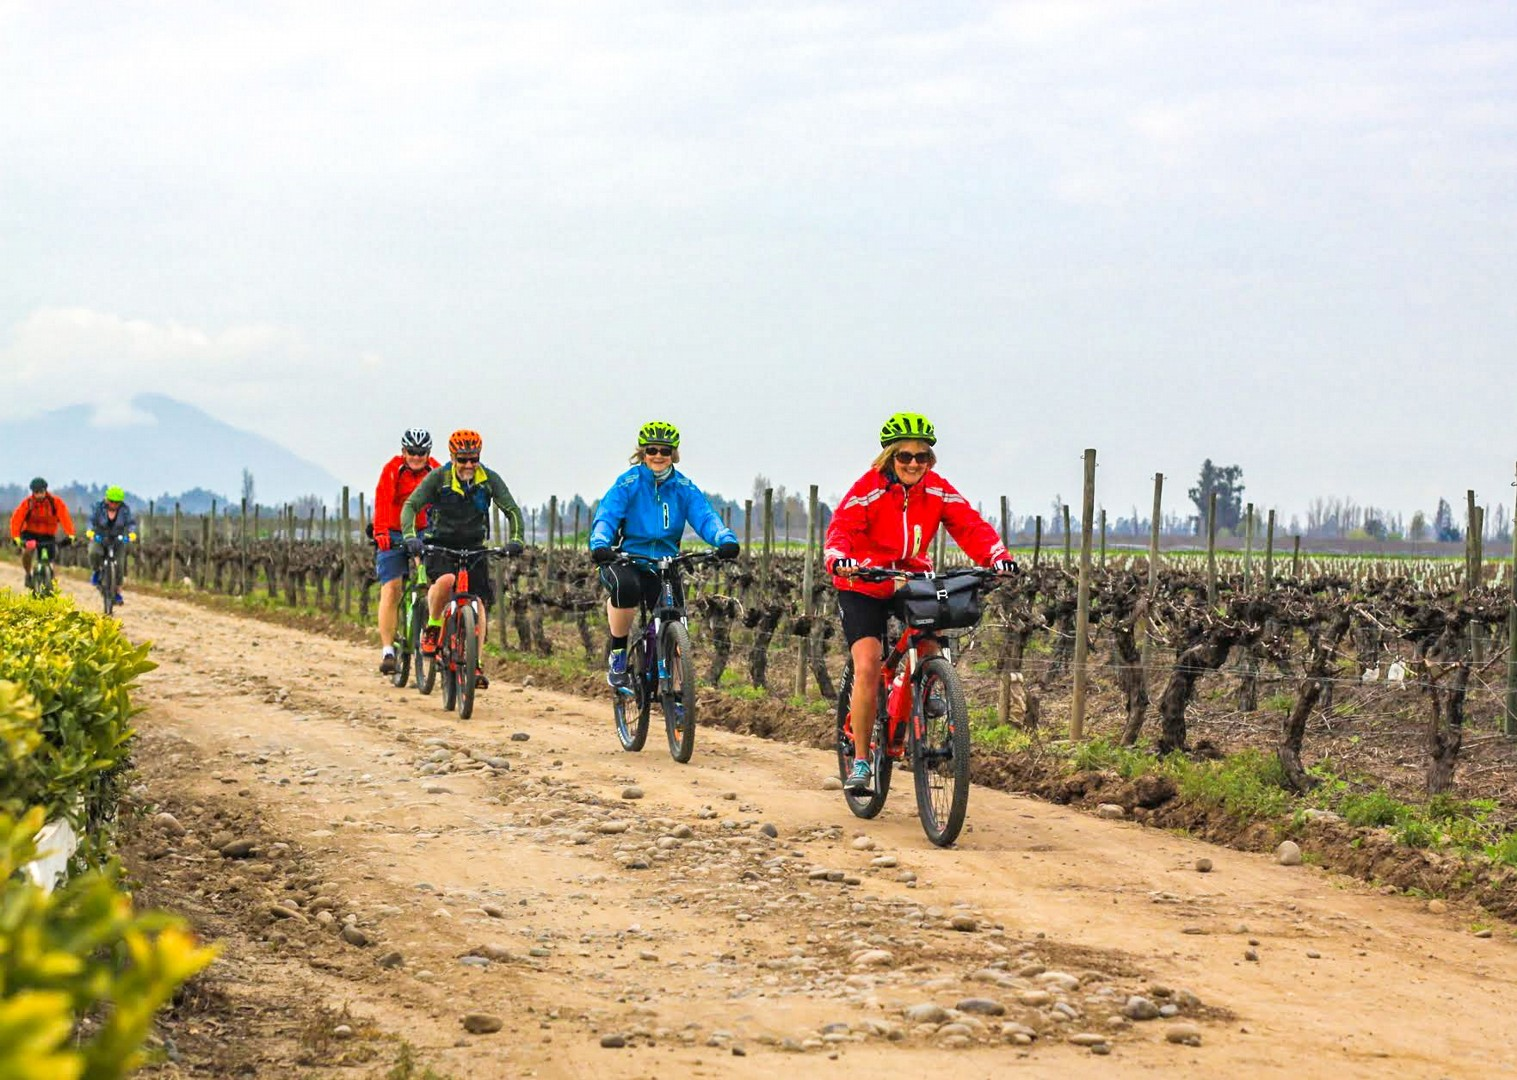 IMG_9465.jpg - Chile - Wine Country - Cycling Adventures